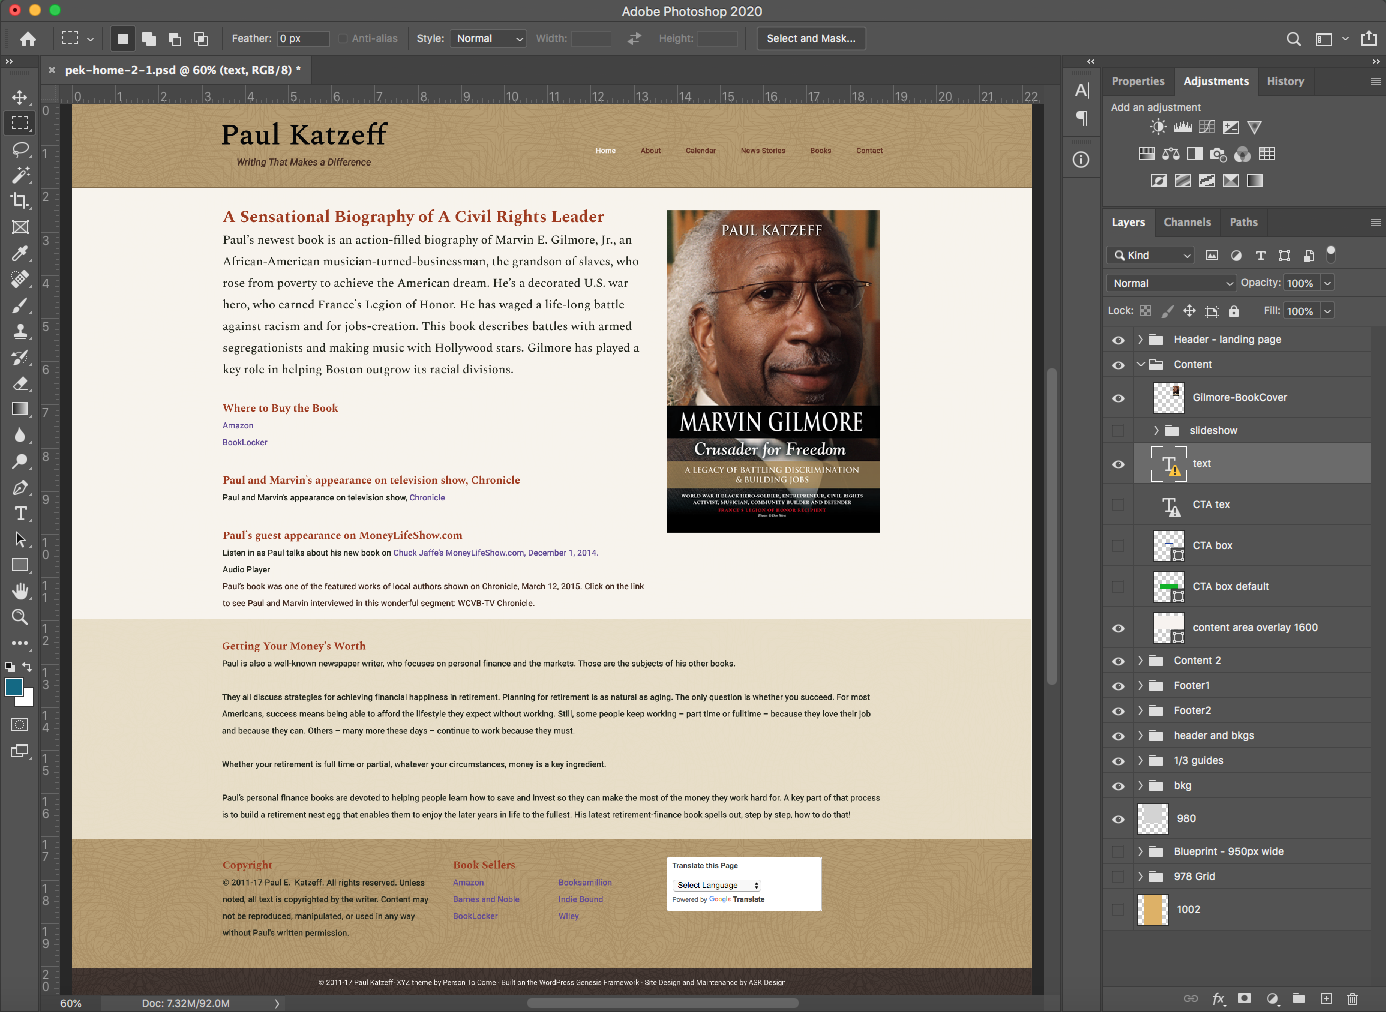 Key component in toolset: Photoshop - home page of Paul Katzeff's website.